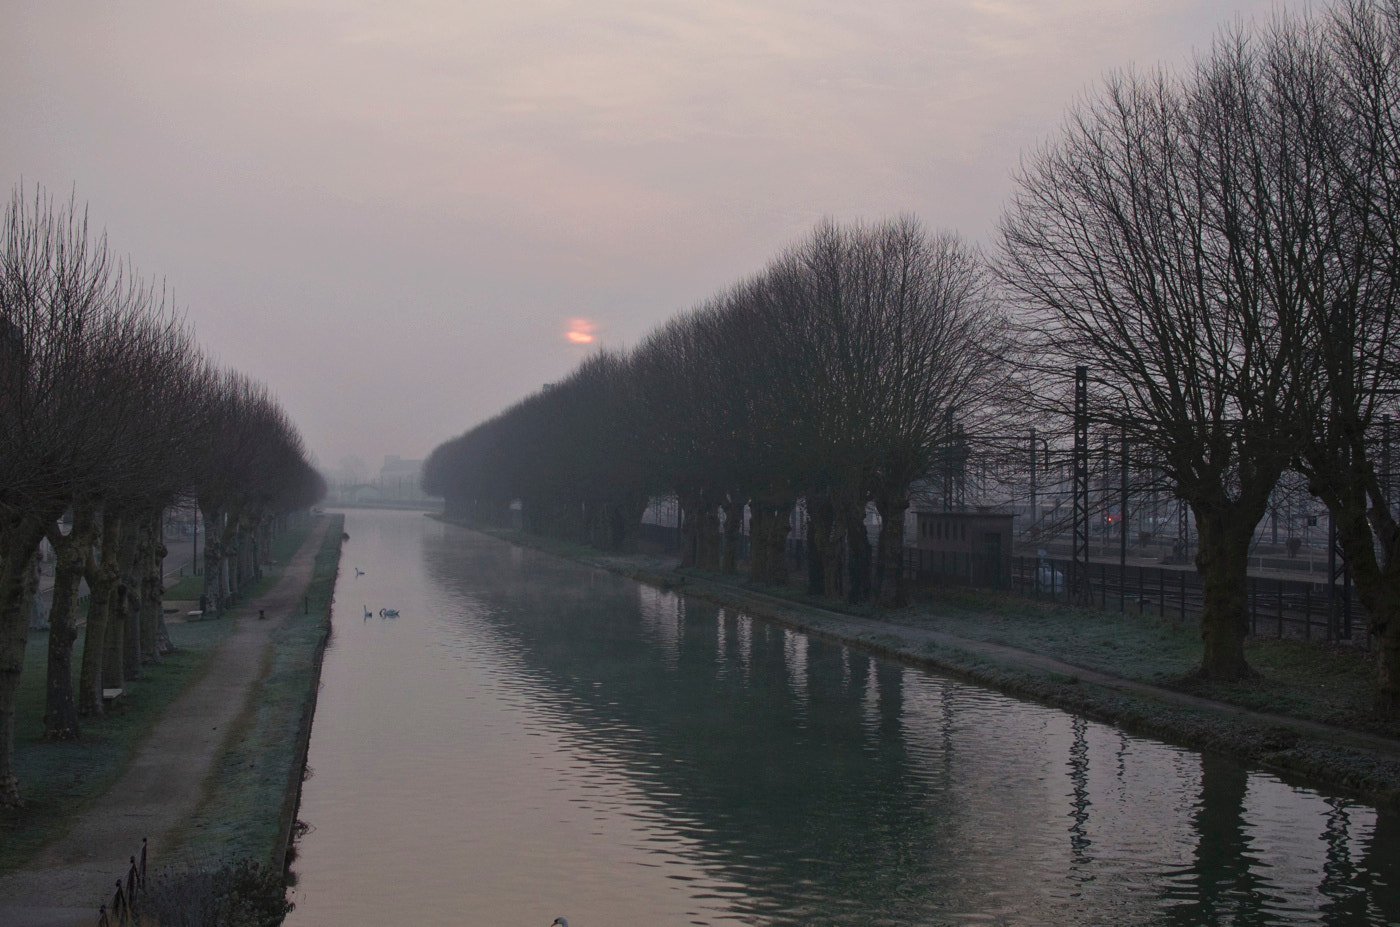 Photograph Burgundy Canal - France by Pierre Nouaille-Degorce on 500px